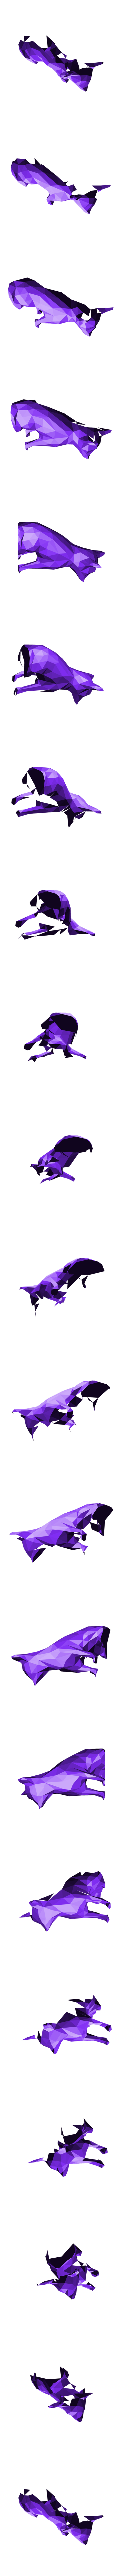 Chihuahua Low Poly.stl Download STL file Chihuahua low poly • 3D printer design, asturmaker3d